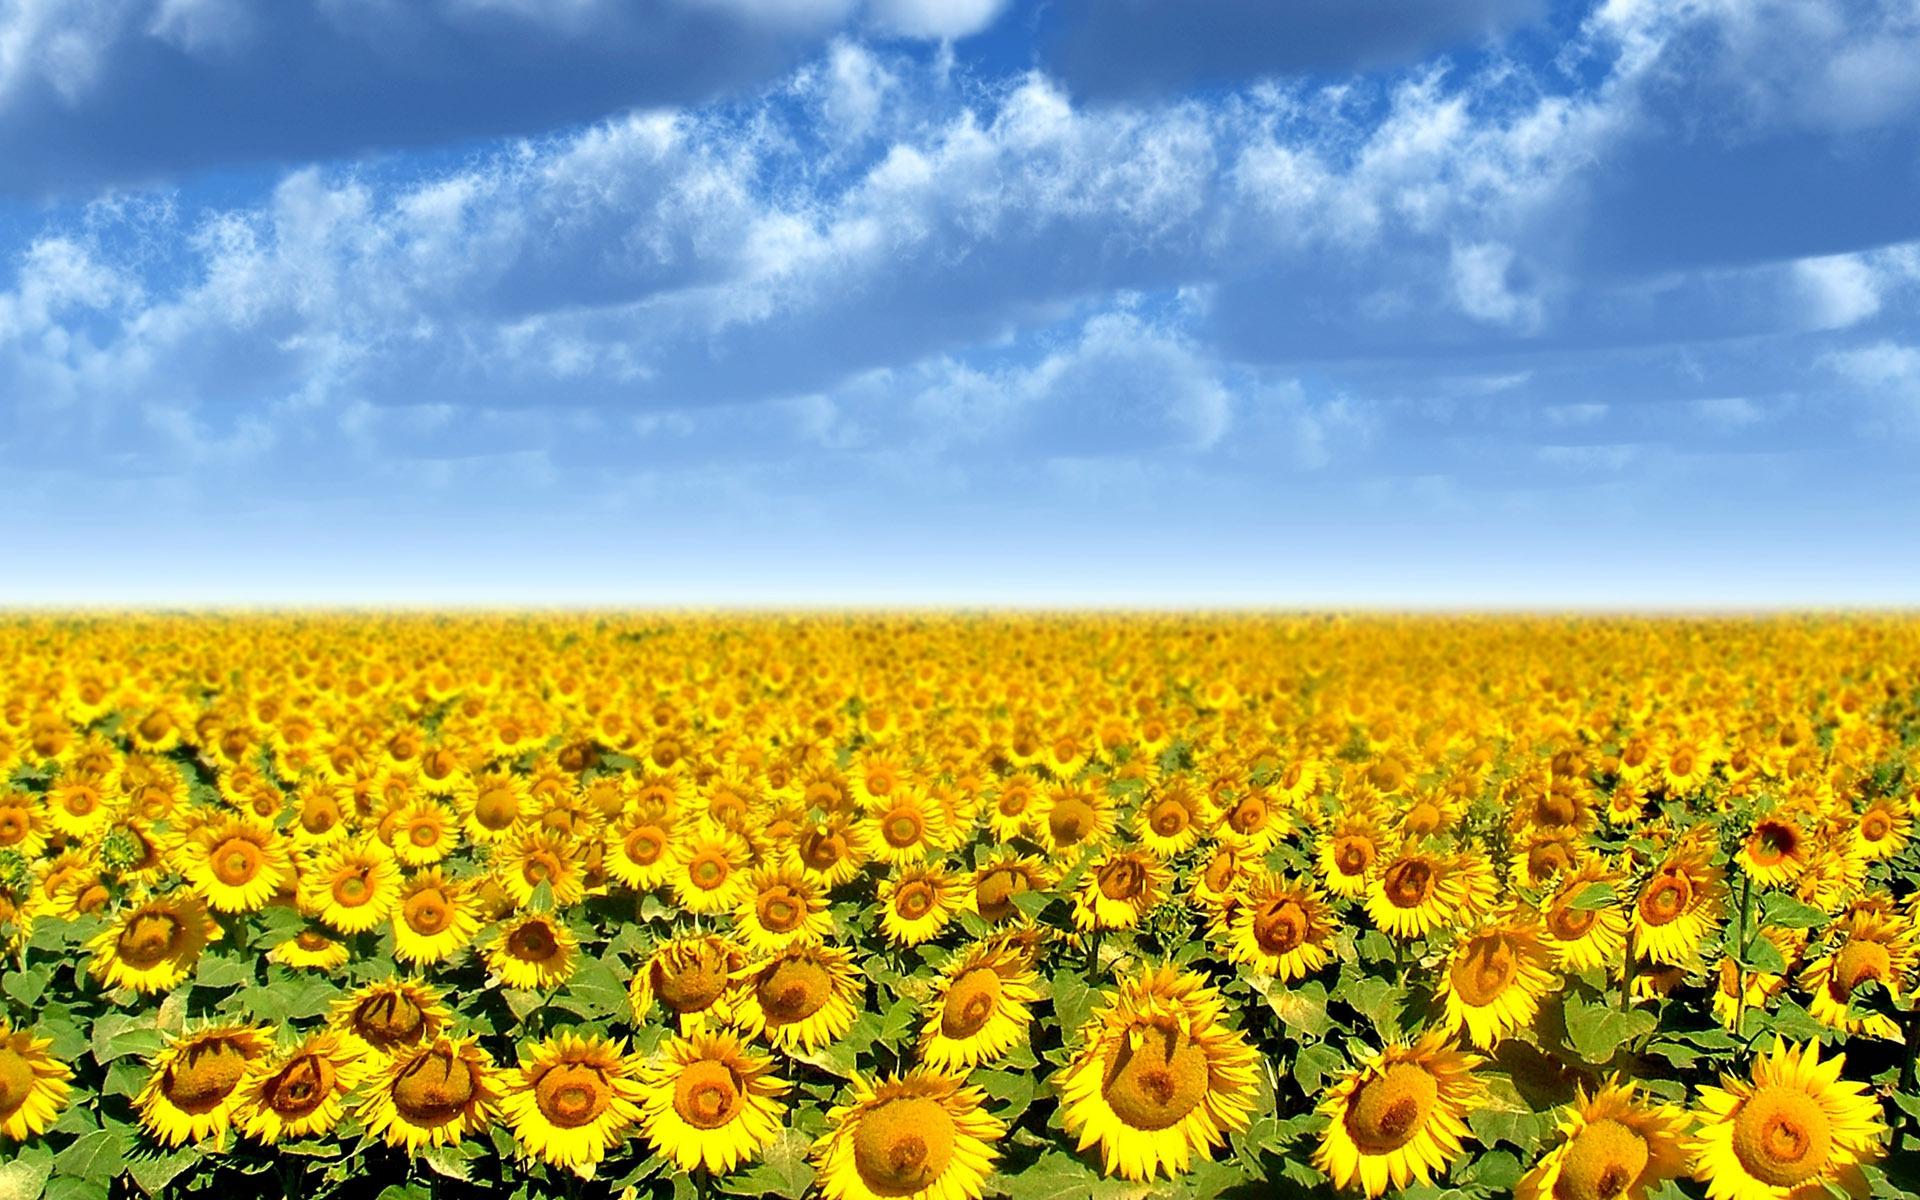 Sunflower field wallpaper 2333 1920x1200